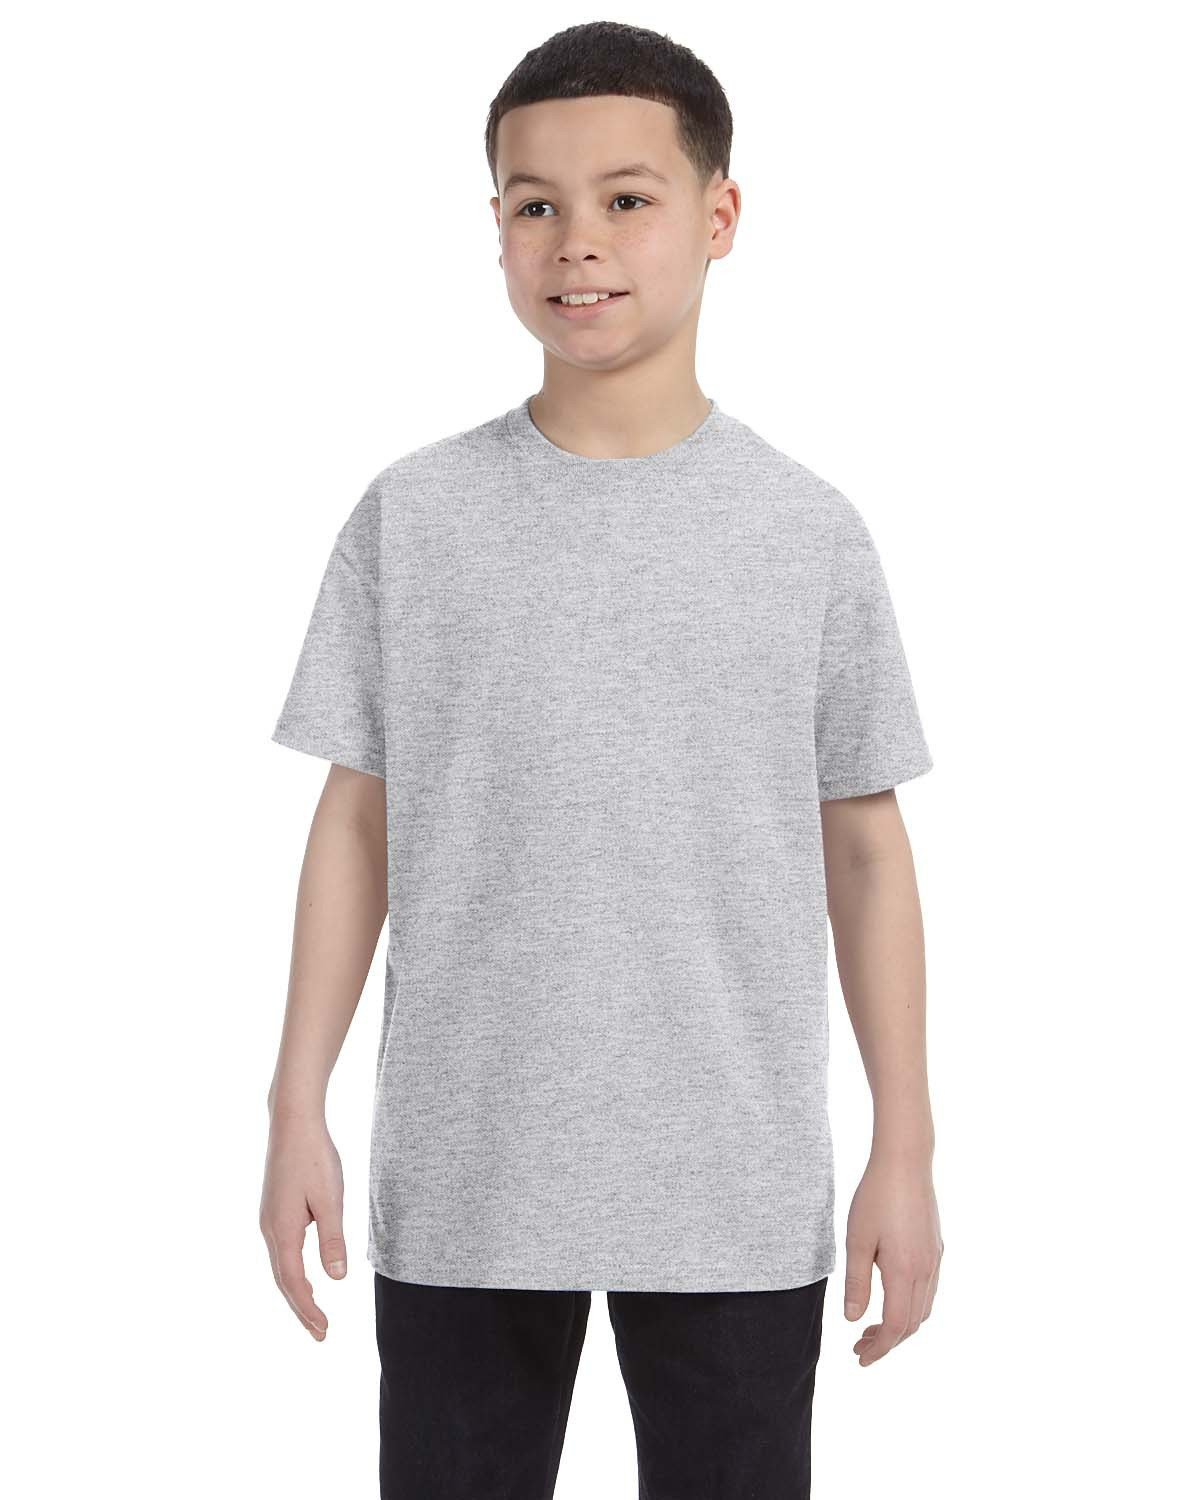 Jerzees - 29B - Youth 5.6 oz., DRI-POWER® ACTIVE T-Shirt